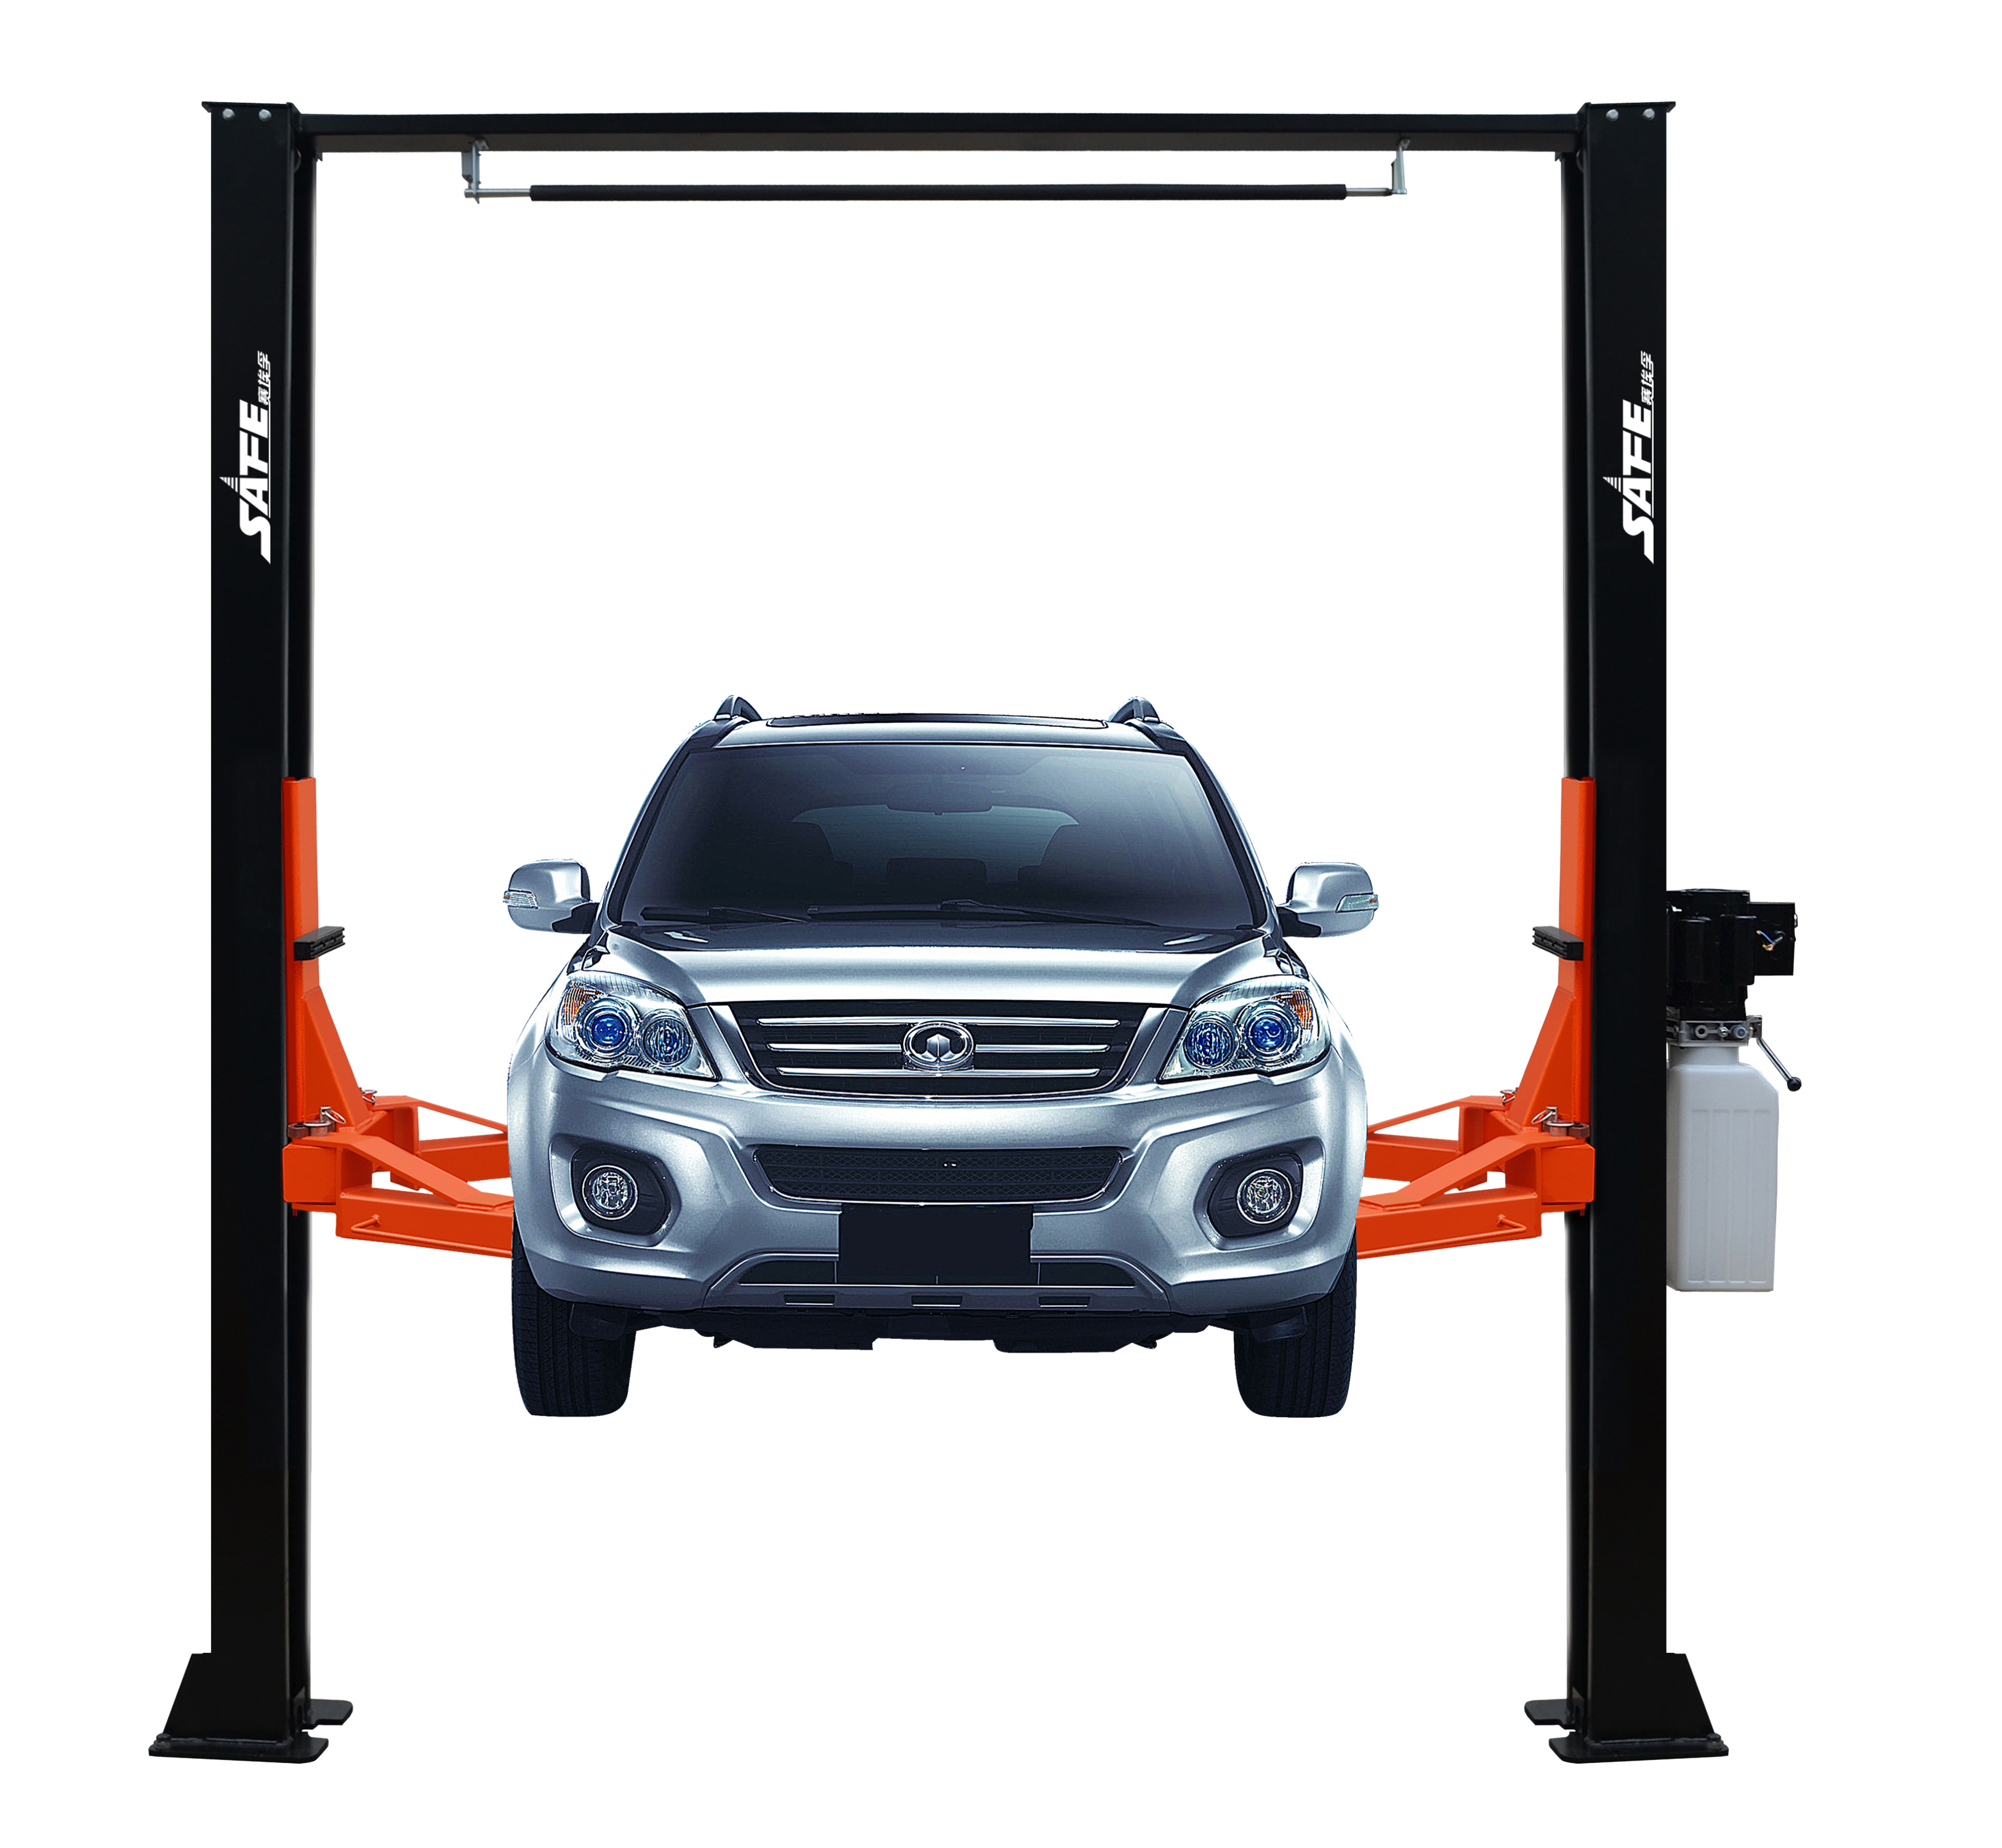 Garage Car Lift Images 2019 Hydraulic 2 Post Car Lift For Car Repair Buy Hydraulic Garage Car Lift 2 Post Lift Car Lift Product On Alibaba